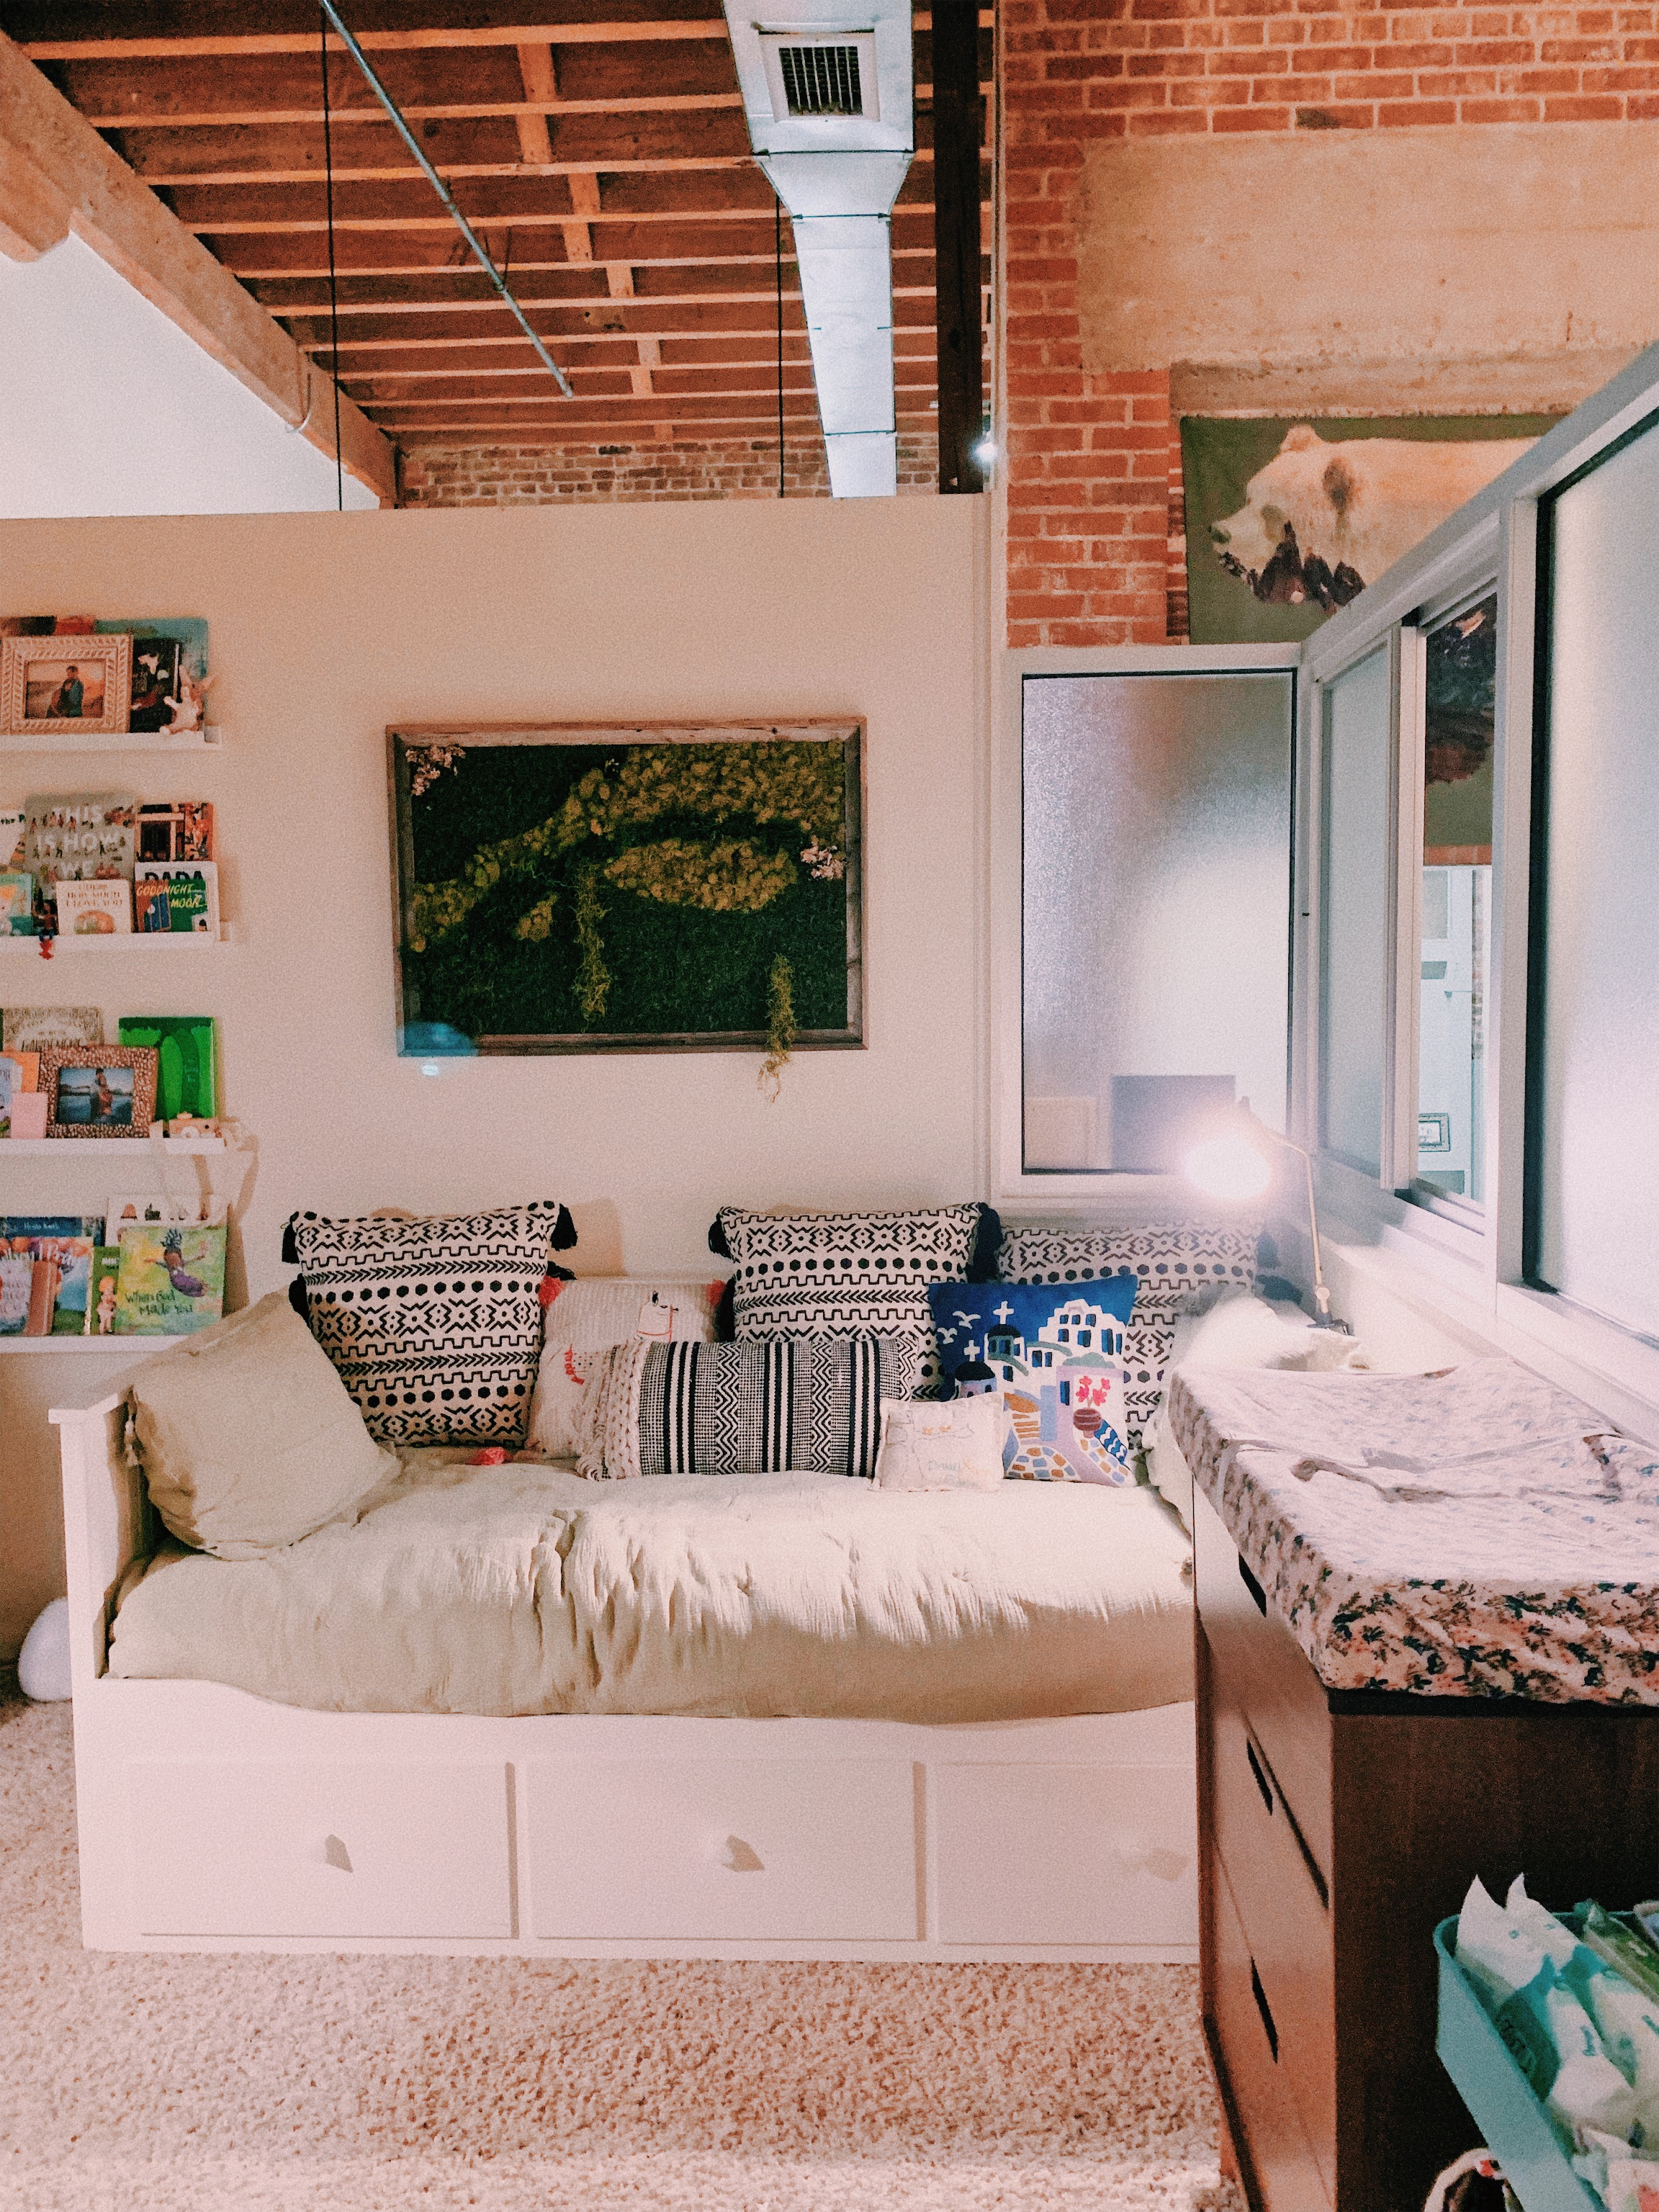 This is a good shot of our open air loft. Her 'room' doesn't have walls that go all the way to the high ceiling.